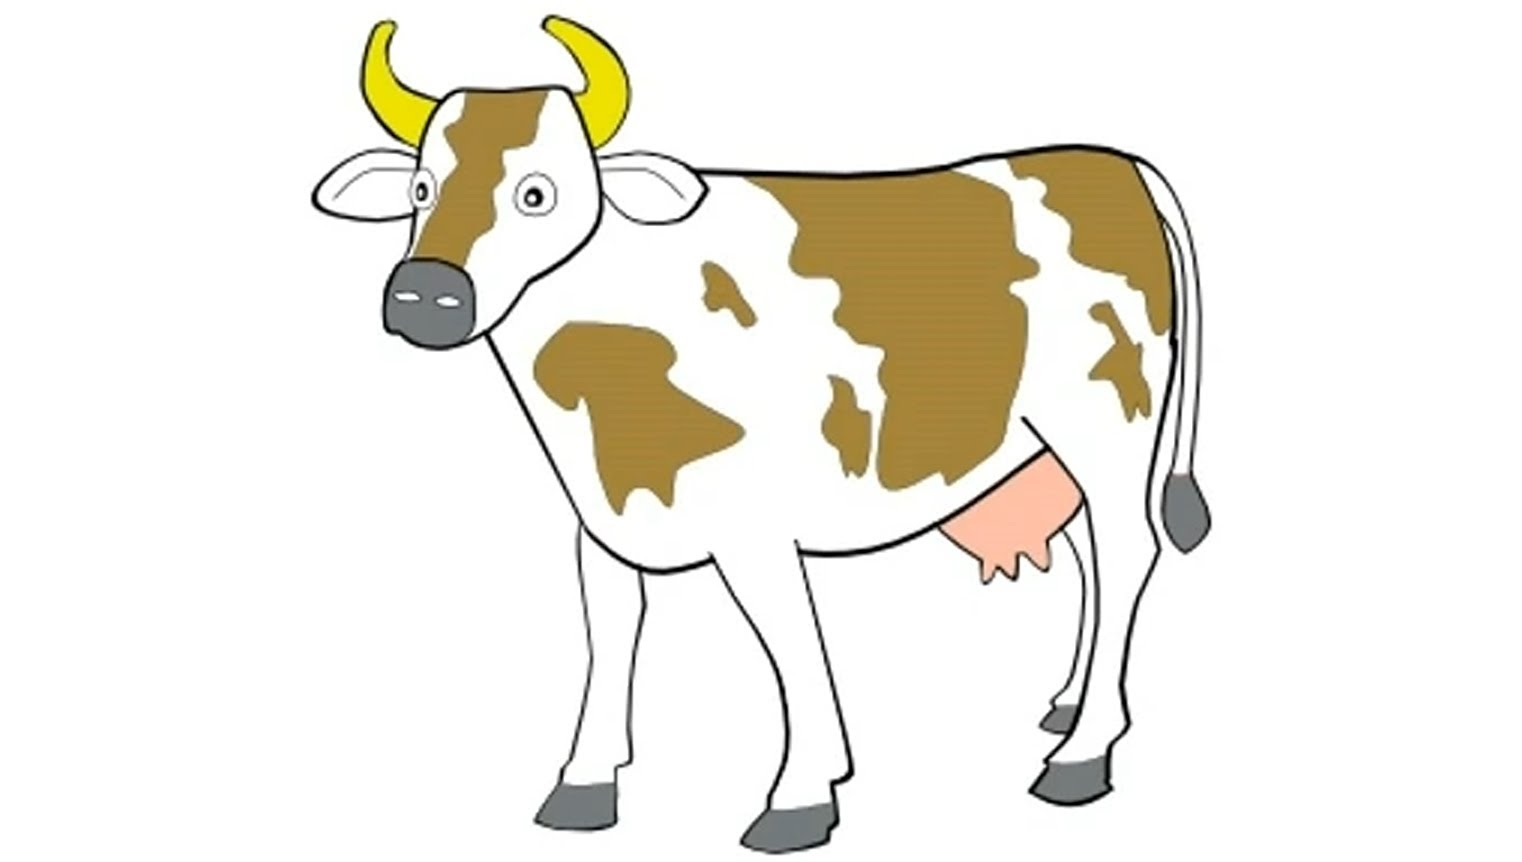 Cow moo sound effect.